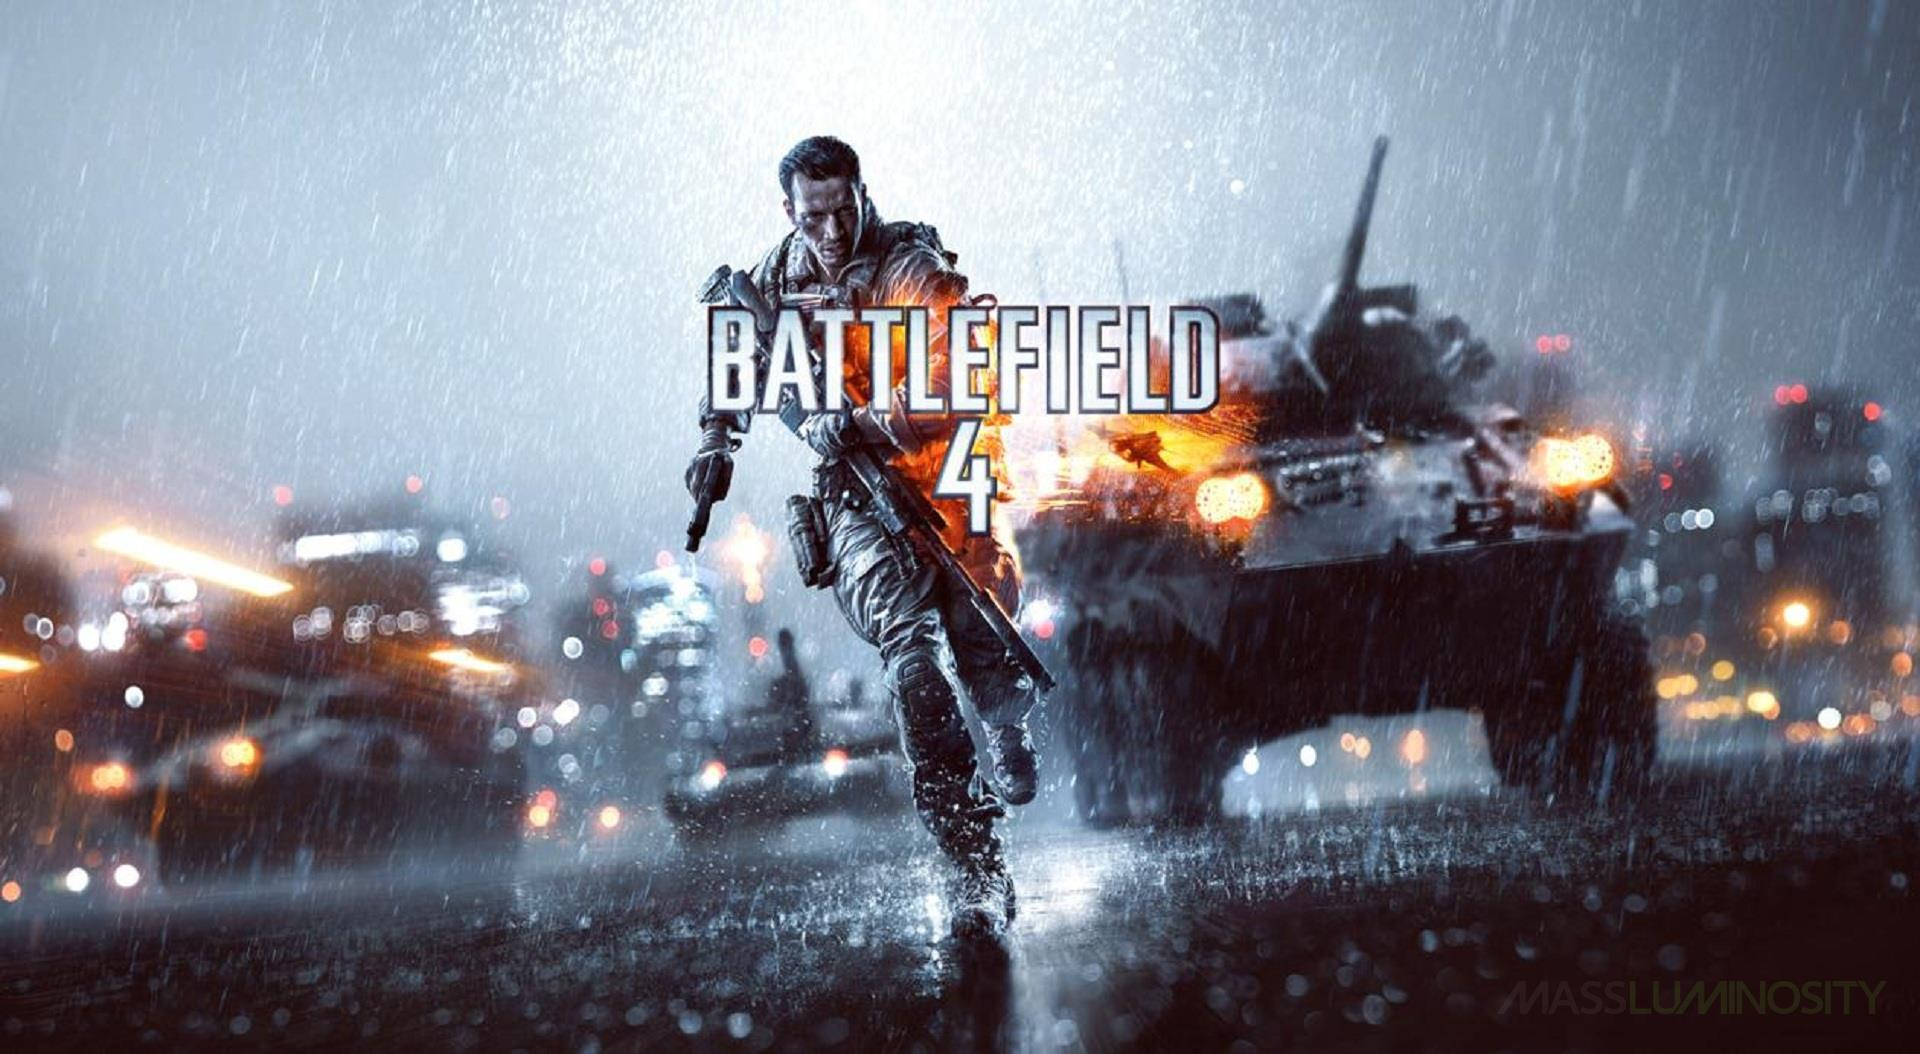 Abstract Anime Ps3 Battlefield 4 Wallpaper 108 10785 Hd Wallpapers 1920x1054